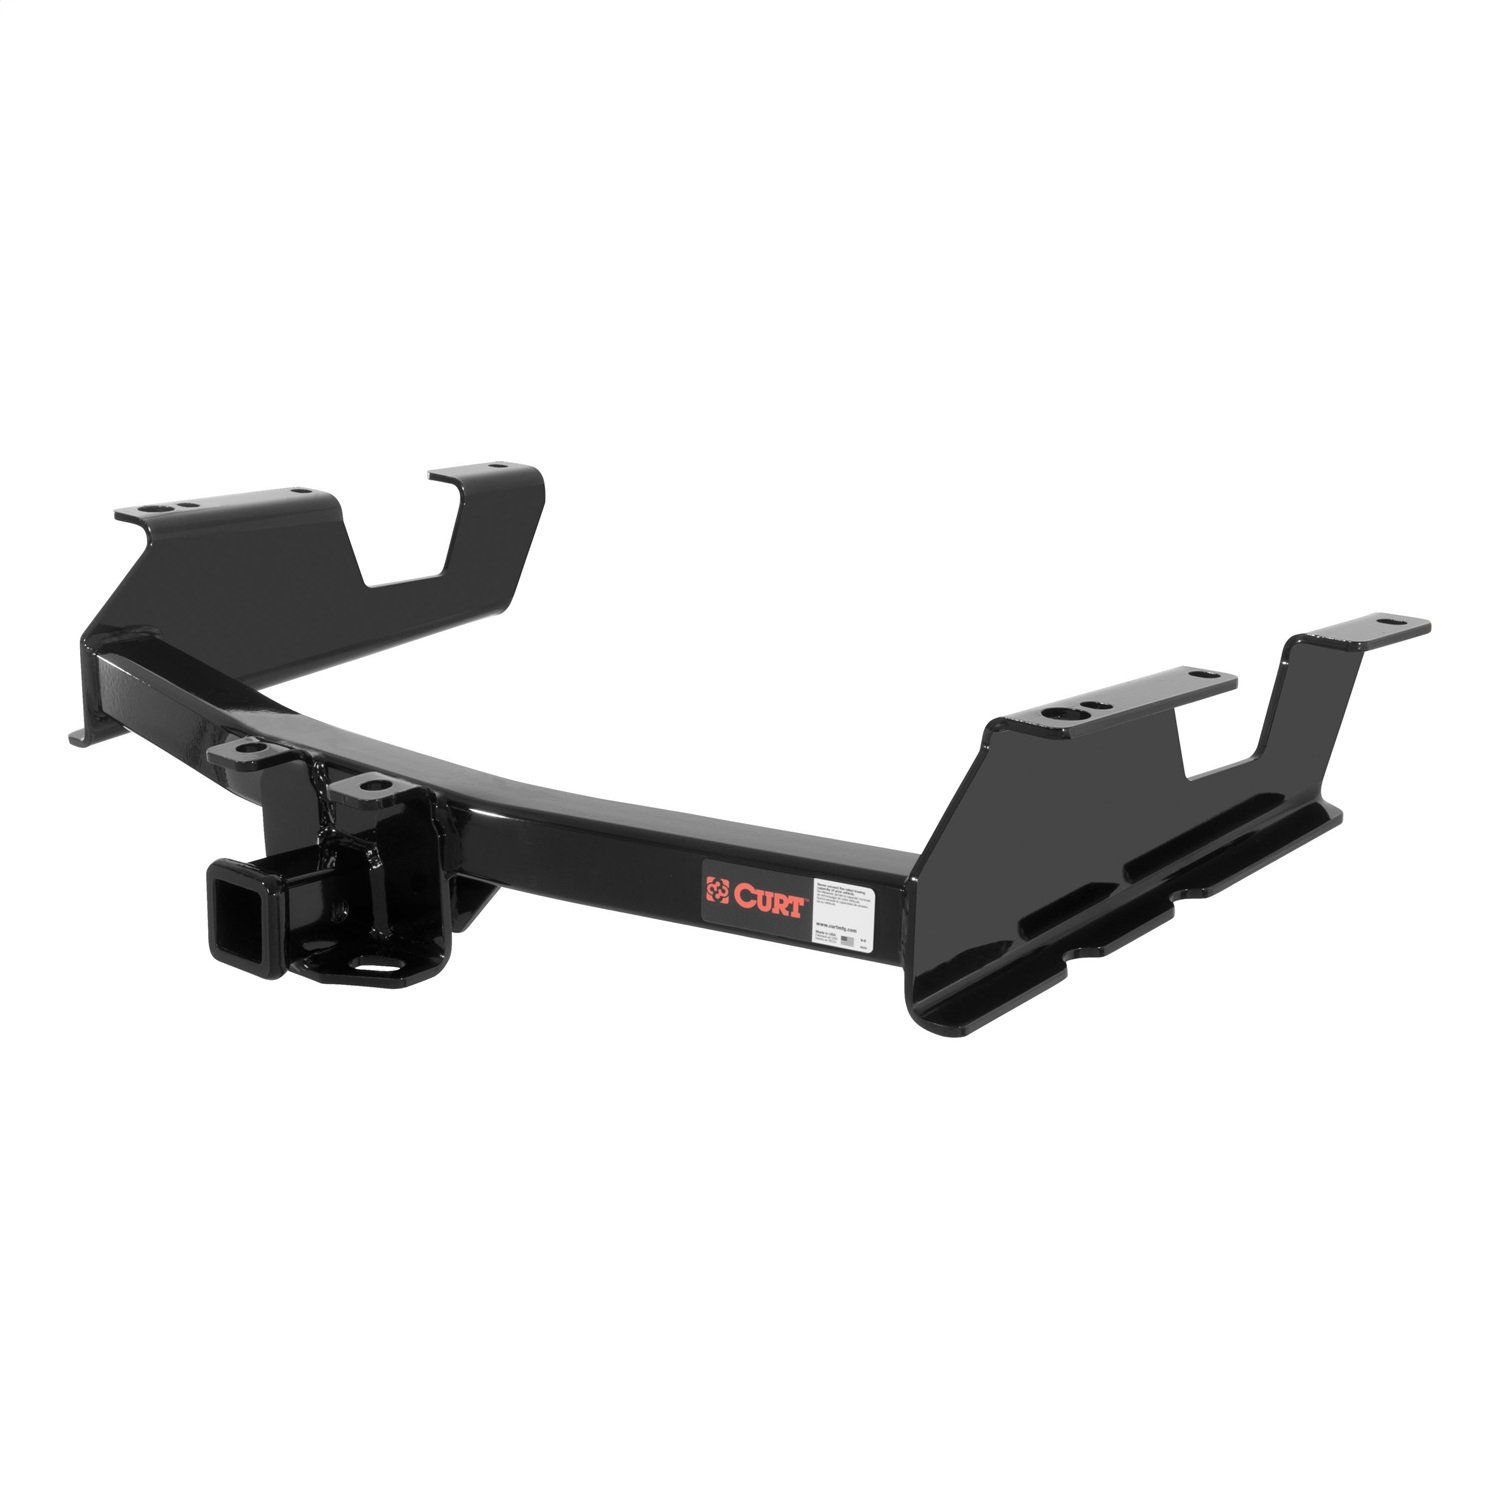 Class IV 2 in. Receiver Hitch, Rear, 10000lbs. Gross Trailer Weight, 1000lbs. Tongue Weight, 12000lbs. Weight Distributing, 1200lbs. Weight Distributing Tongue Weight